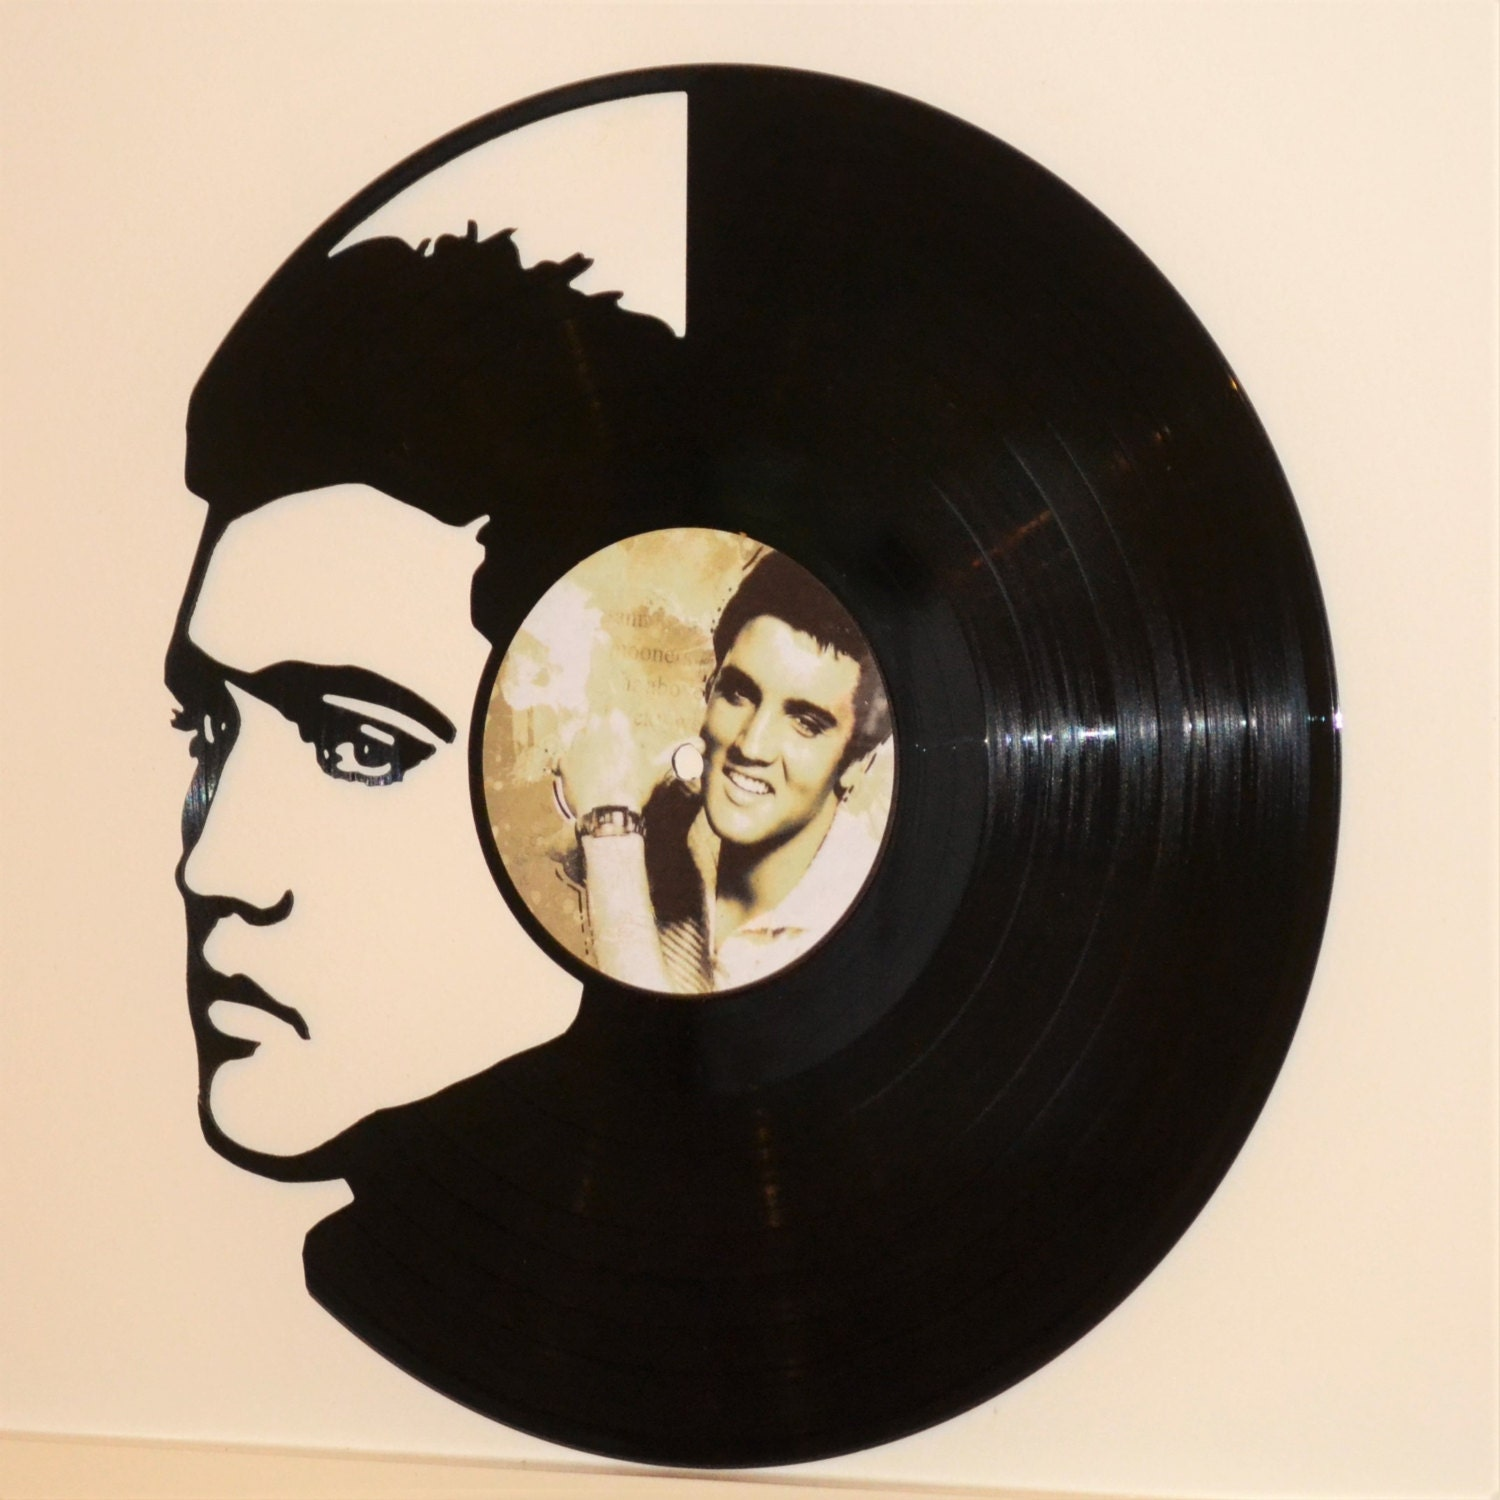 Elvis vinyl record wall art by emmylouwhostore on etsy for Vinyl record wall art